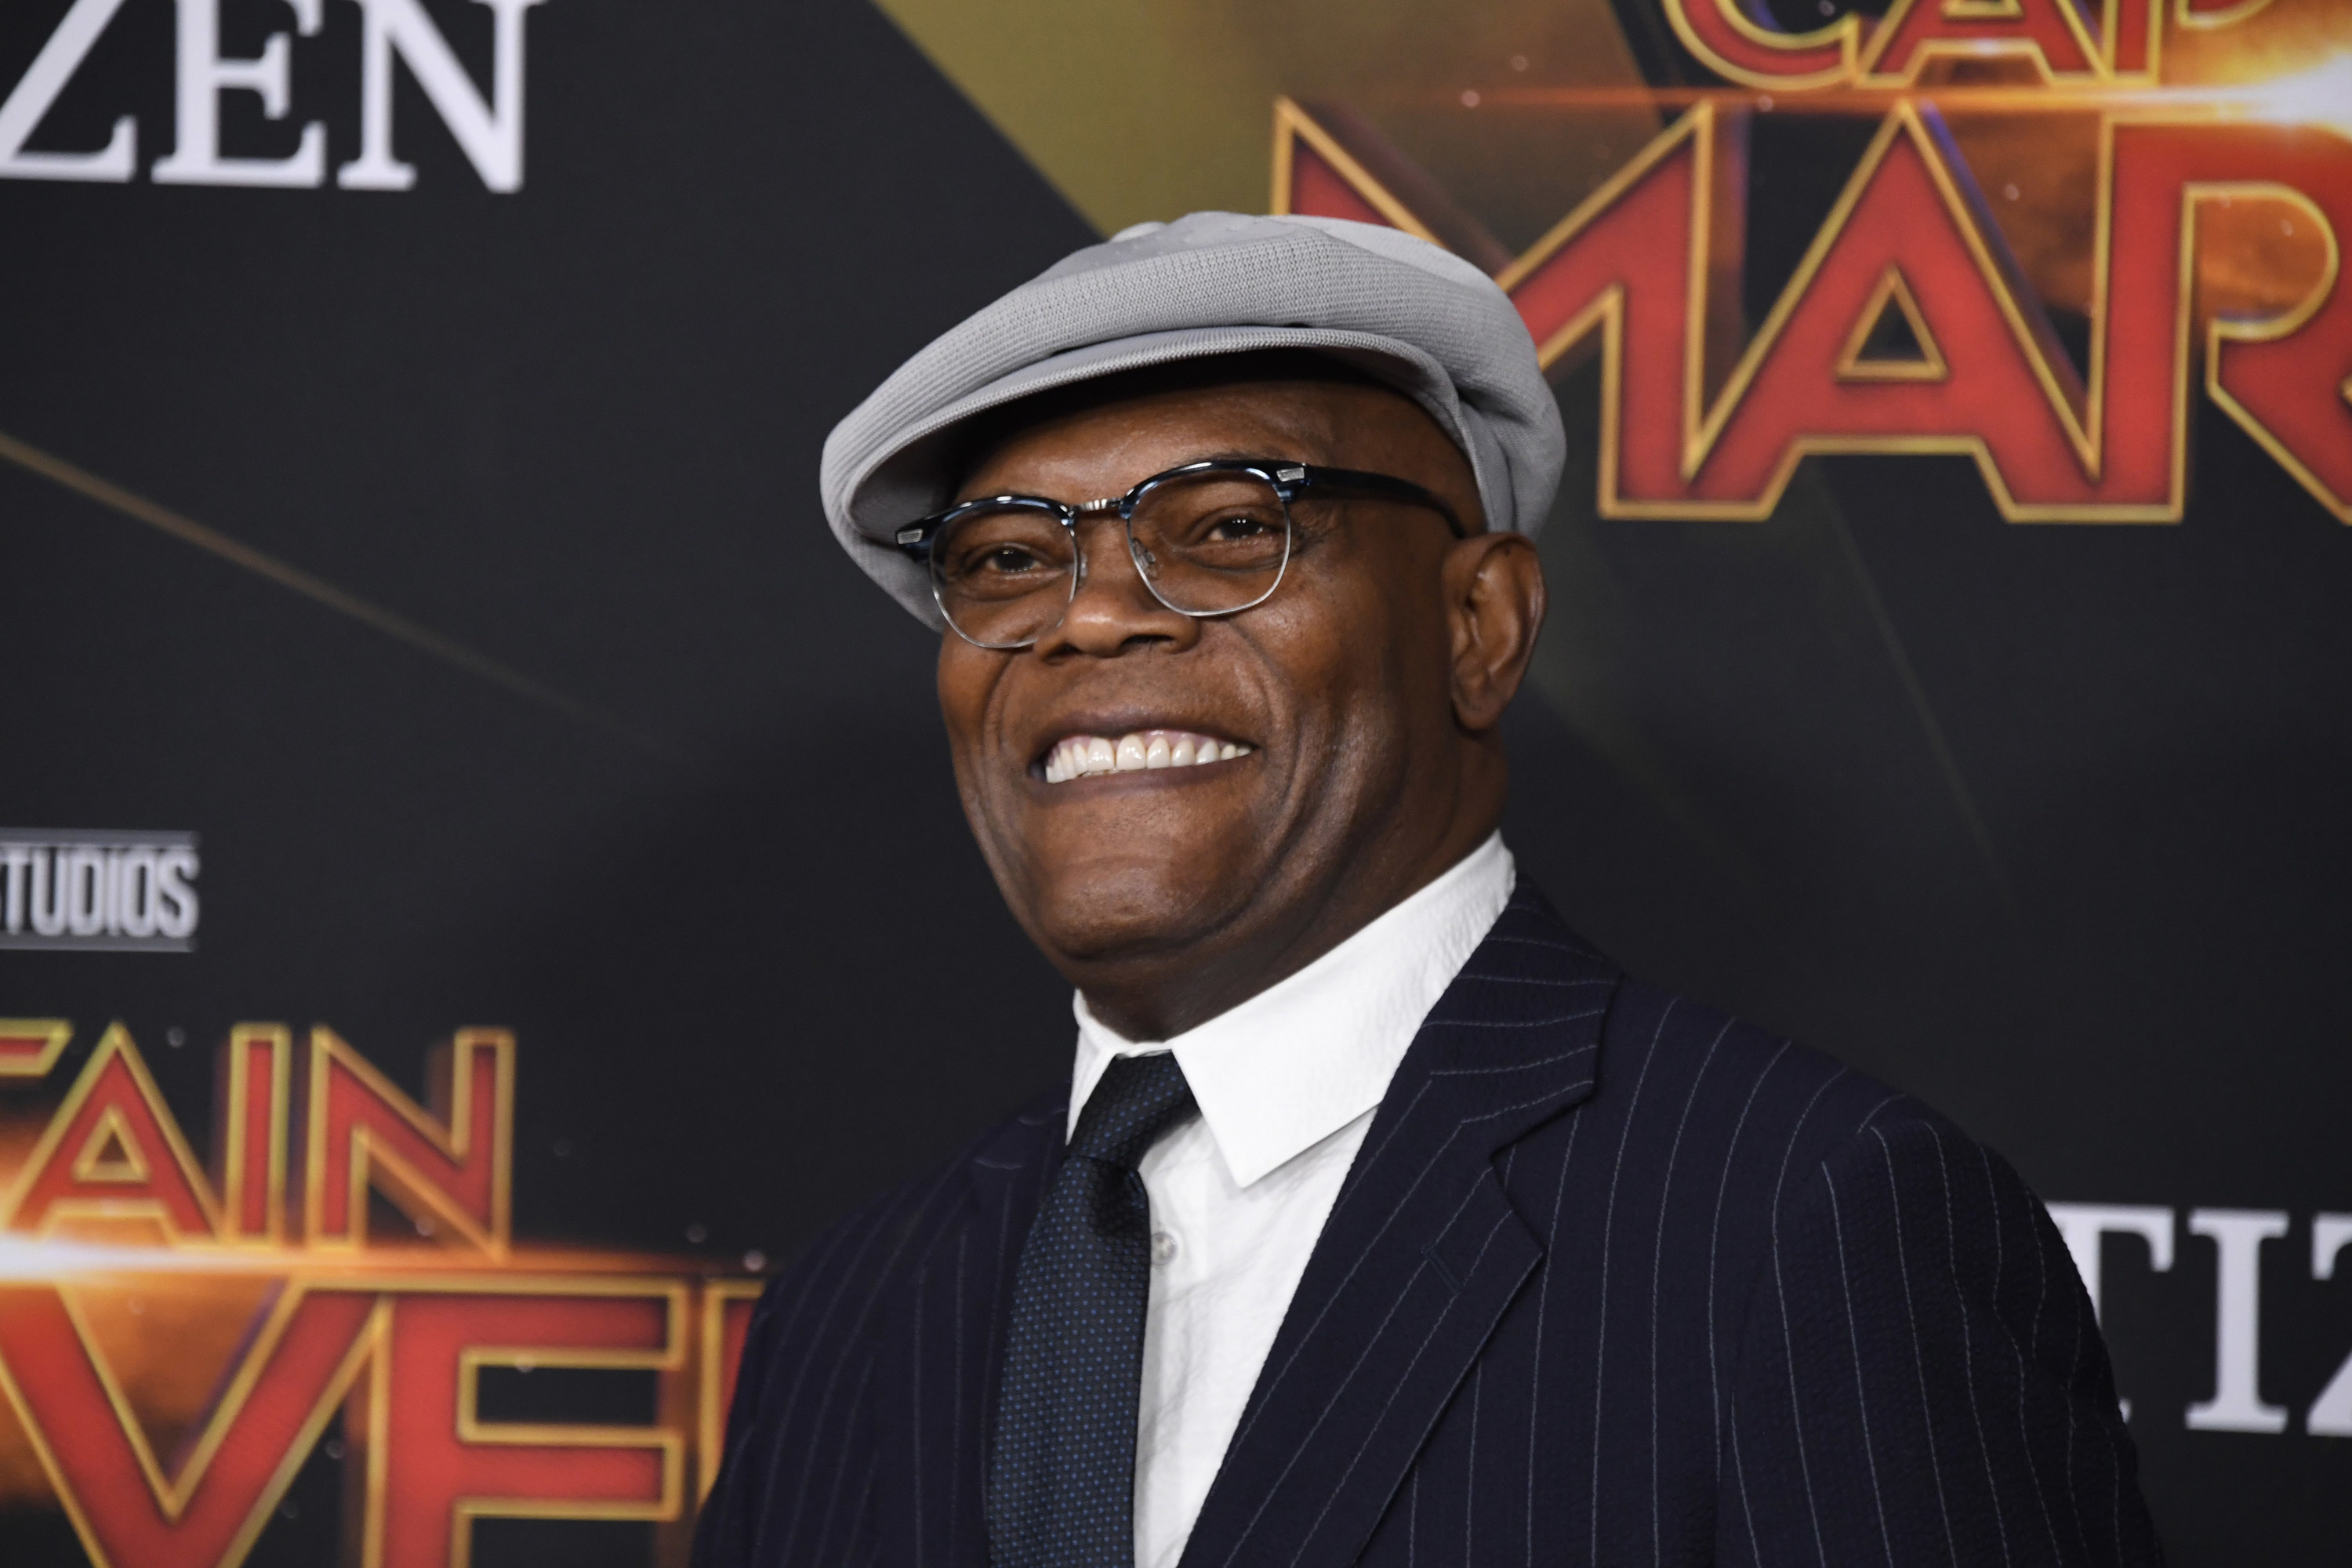 Samuel L. Jackson in a gray cap and suit and tie